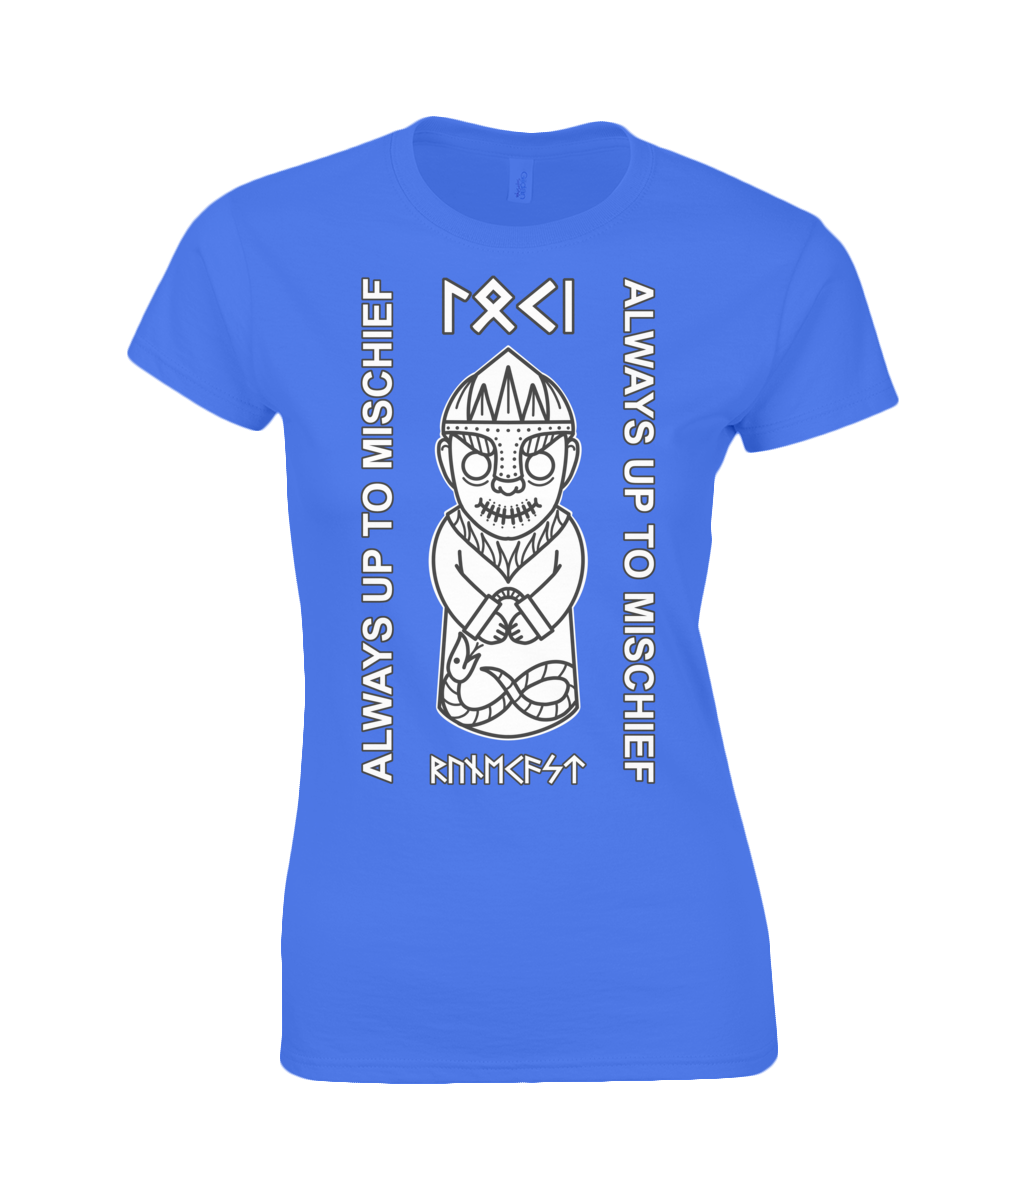 Loki Viking God of Mischief Gildan Ladies Premium Cotton T-Shirt